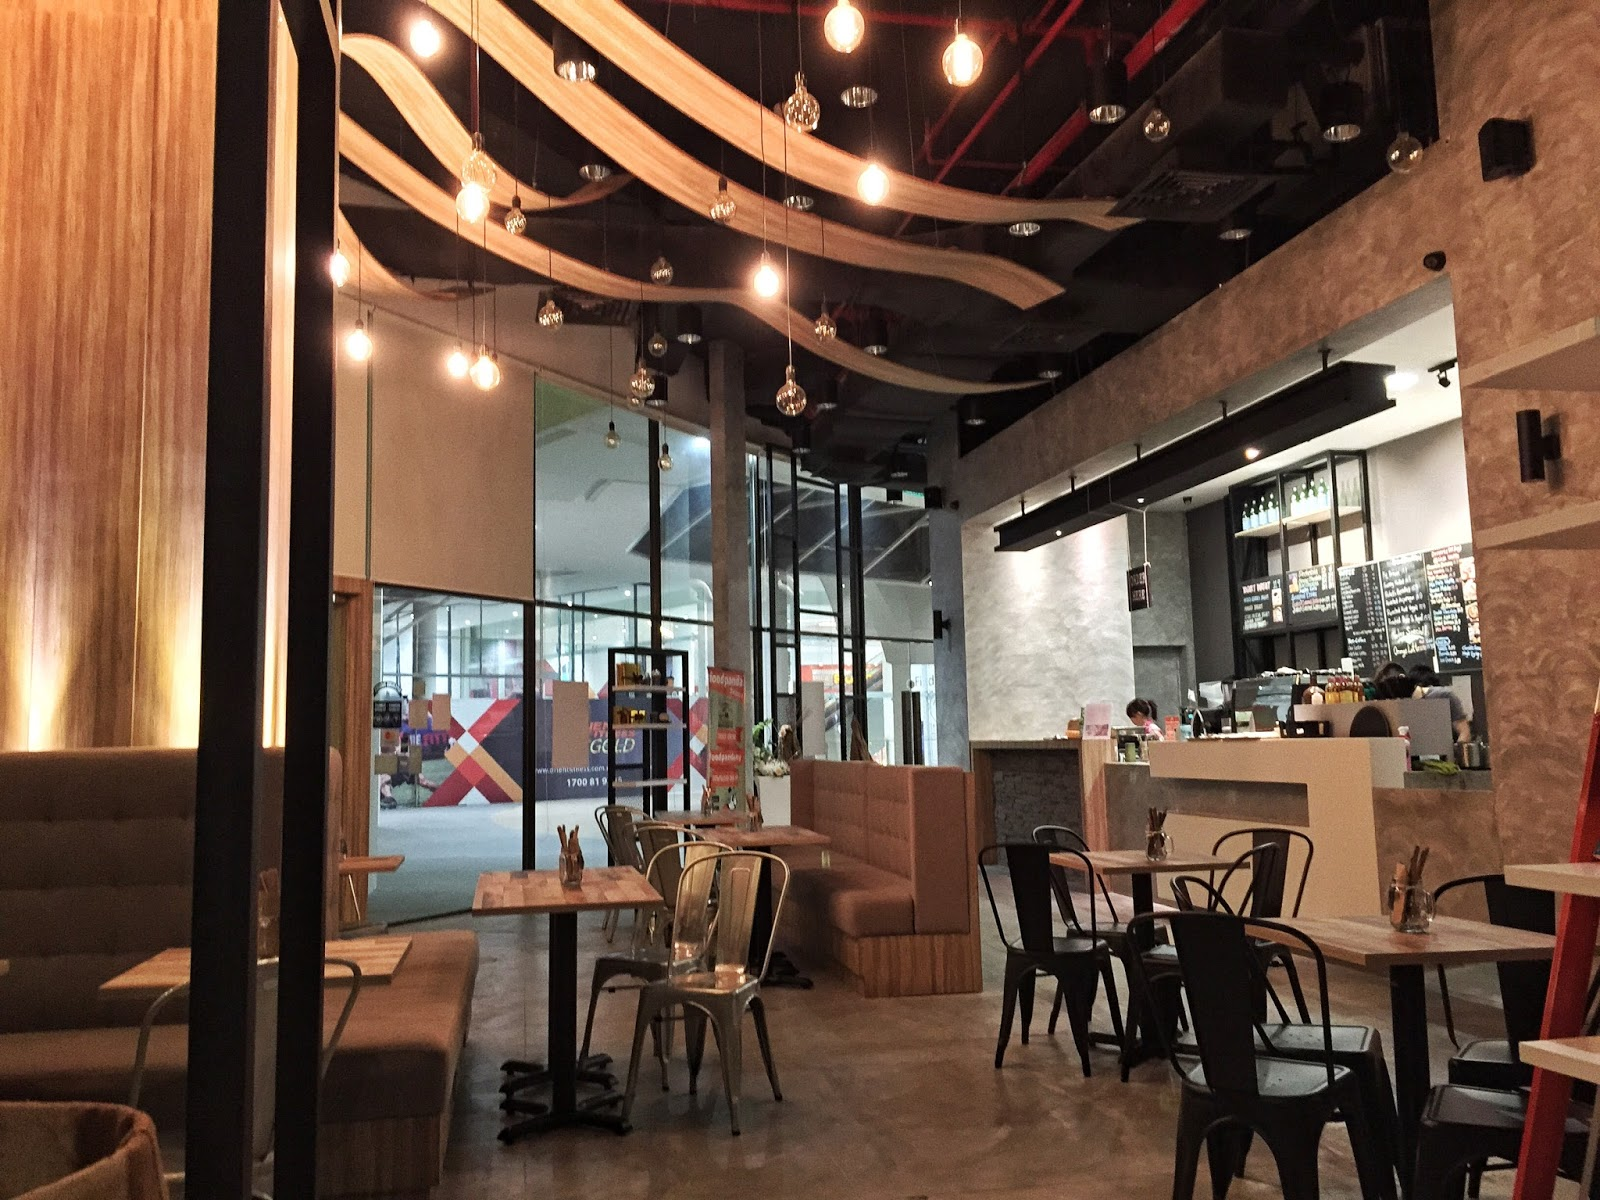 Penang Cafes - Brown Pocket Cafe Interior